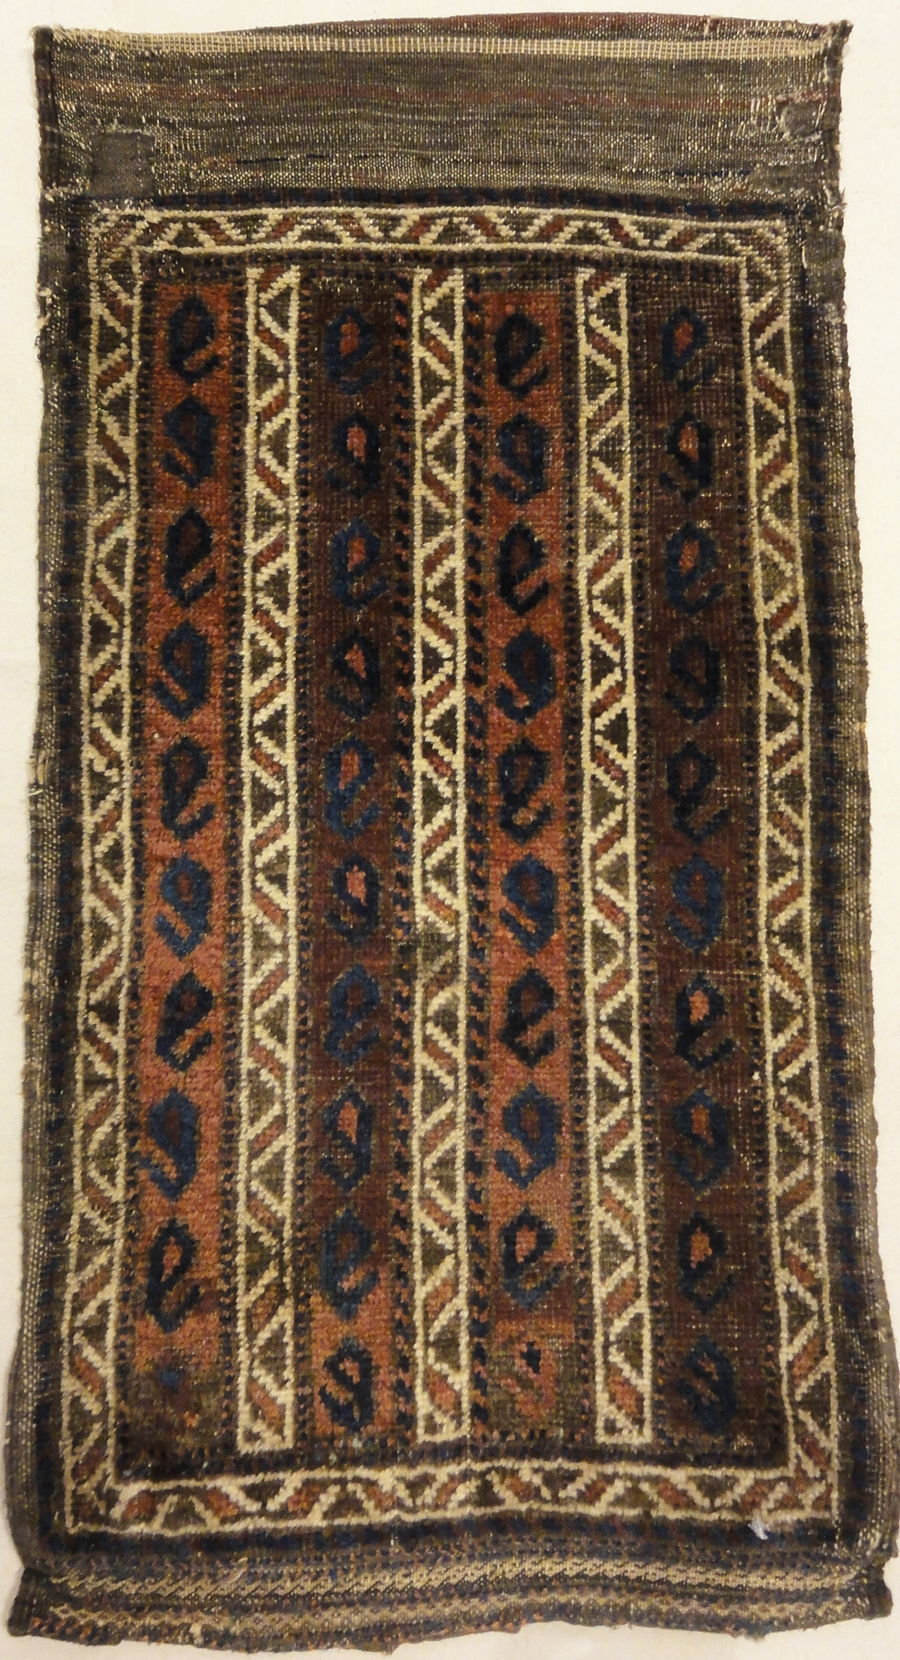 Antique Balish Rugs & More